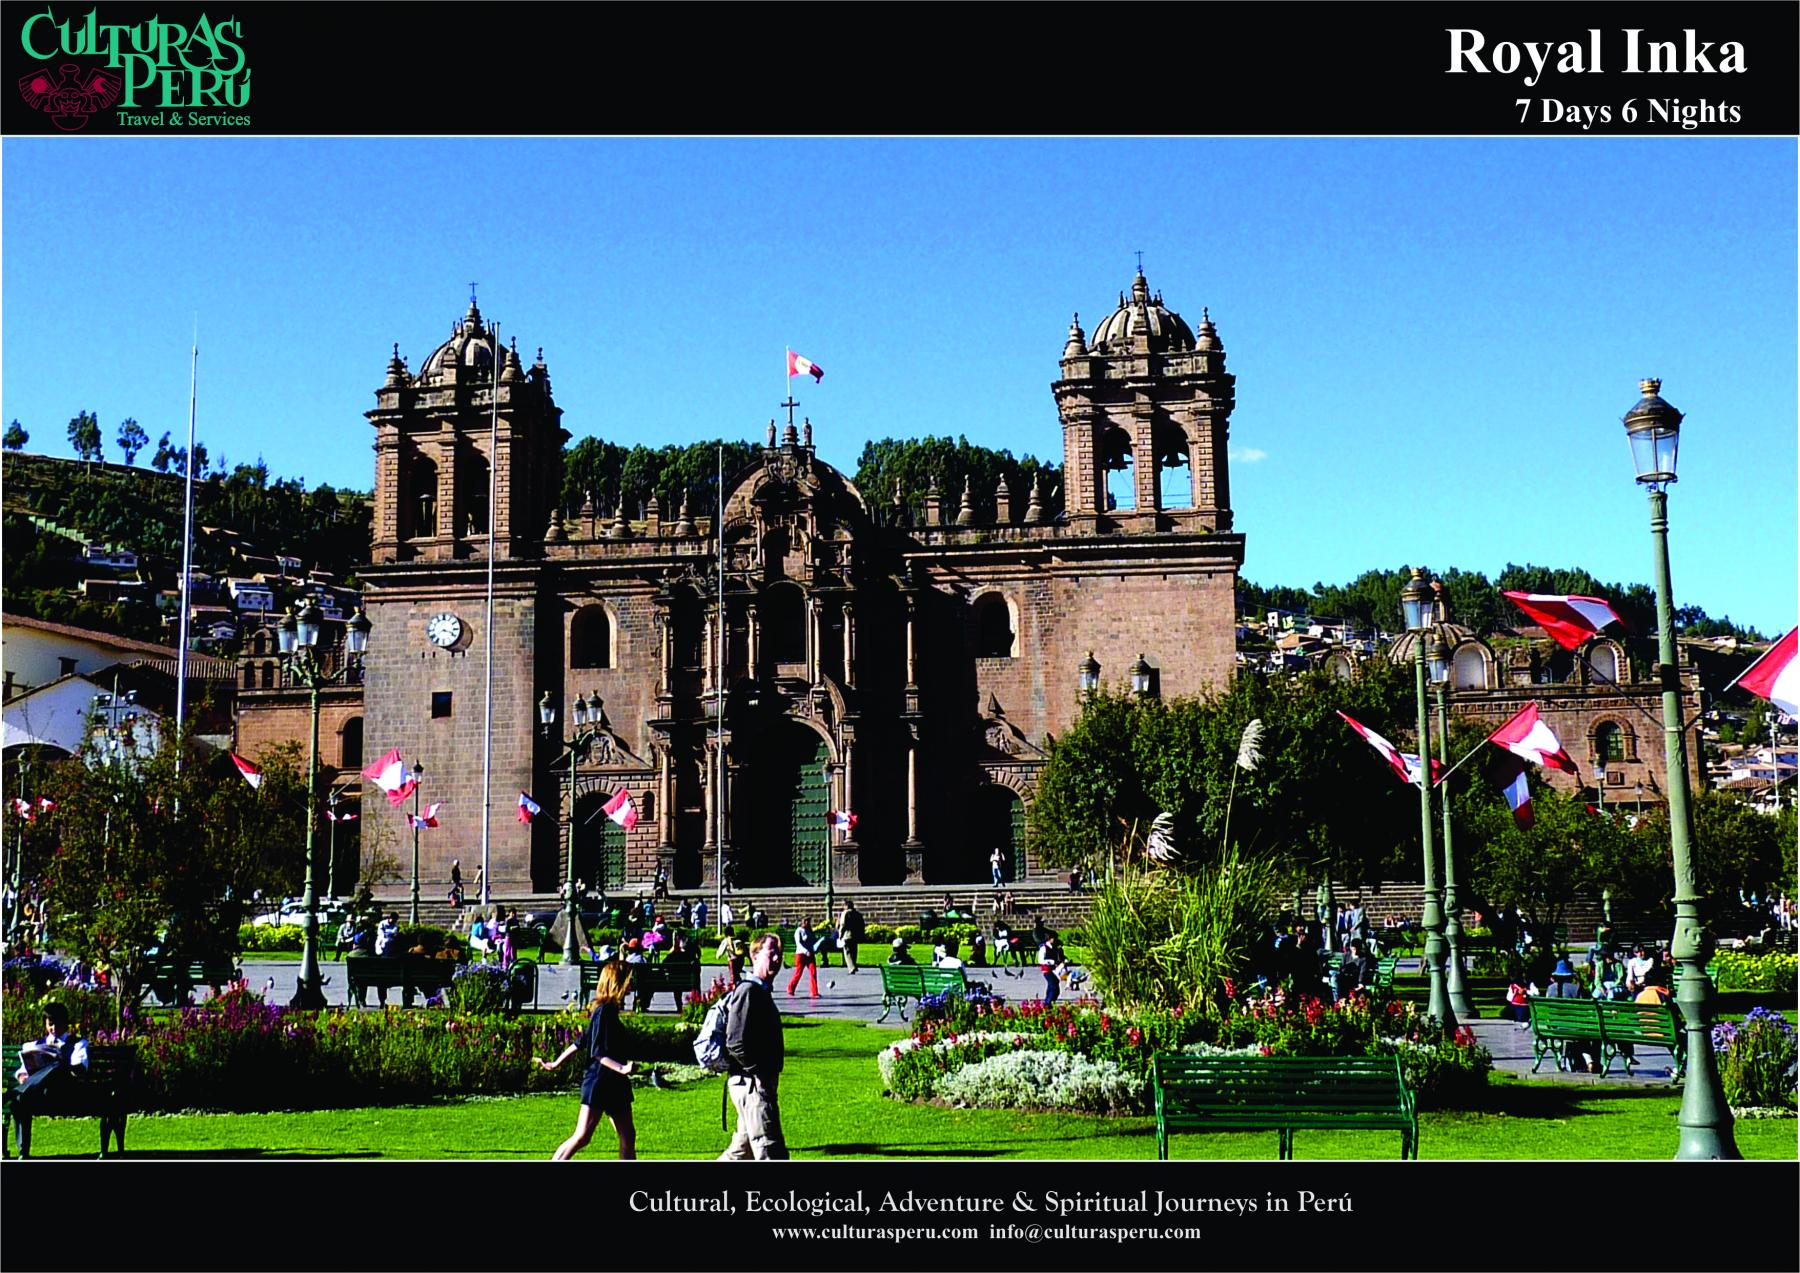 Day 1: Cusco (City Tour)